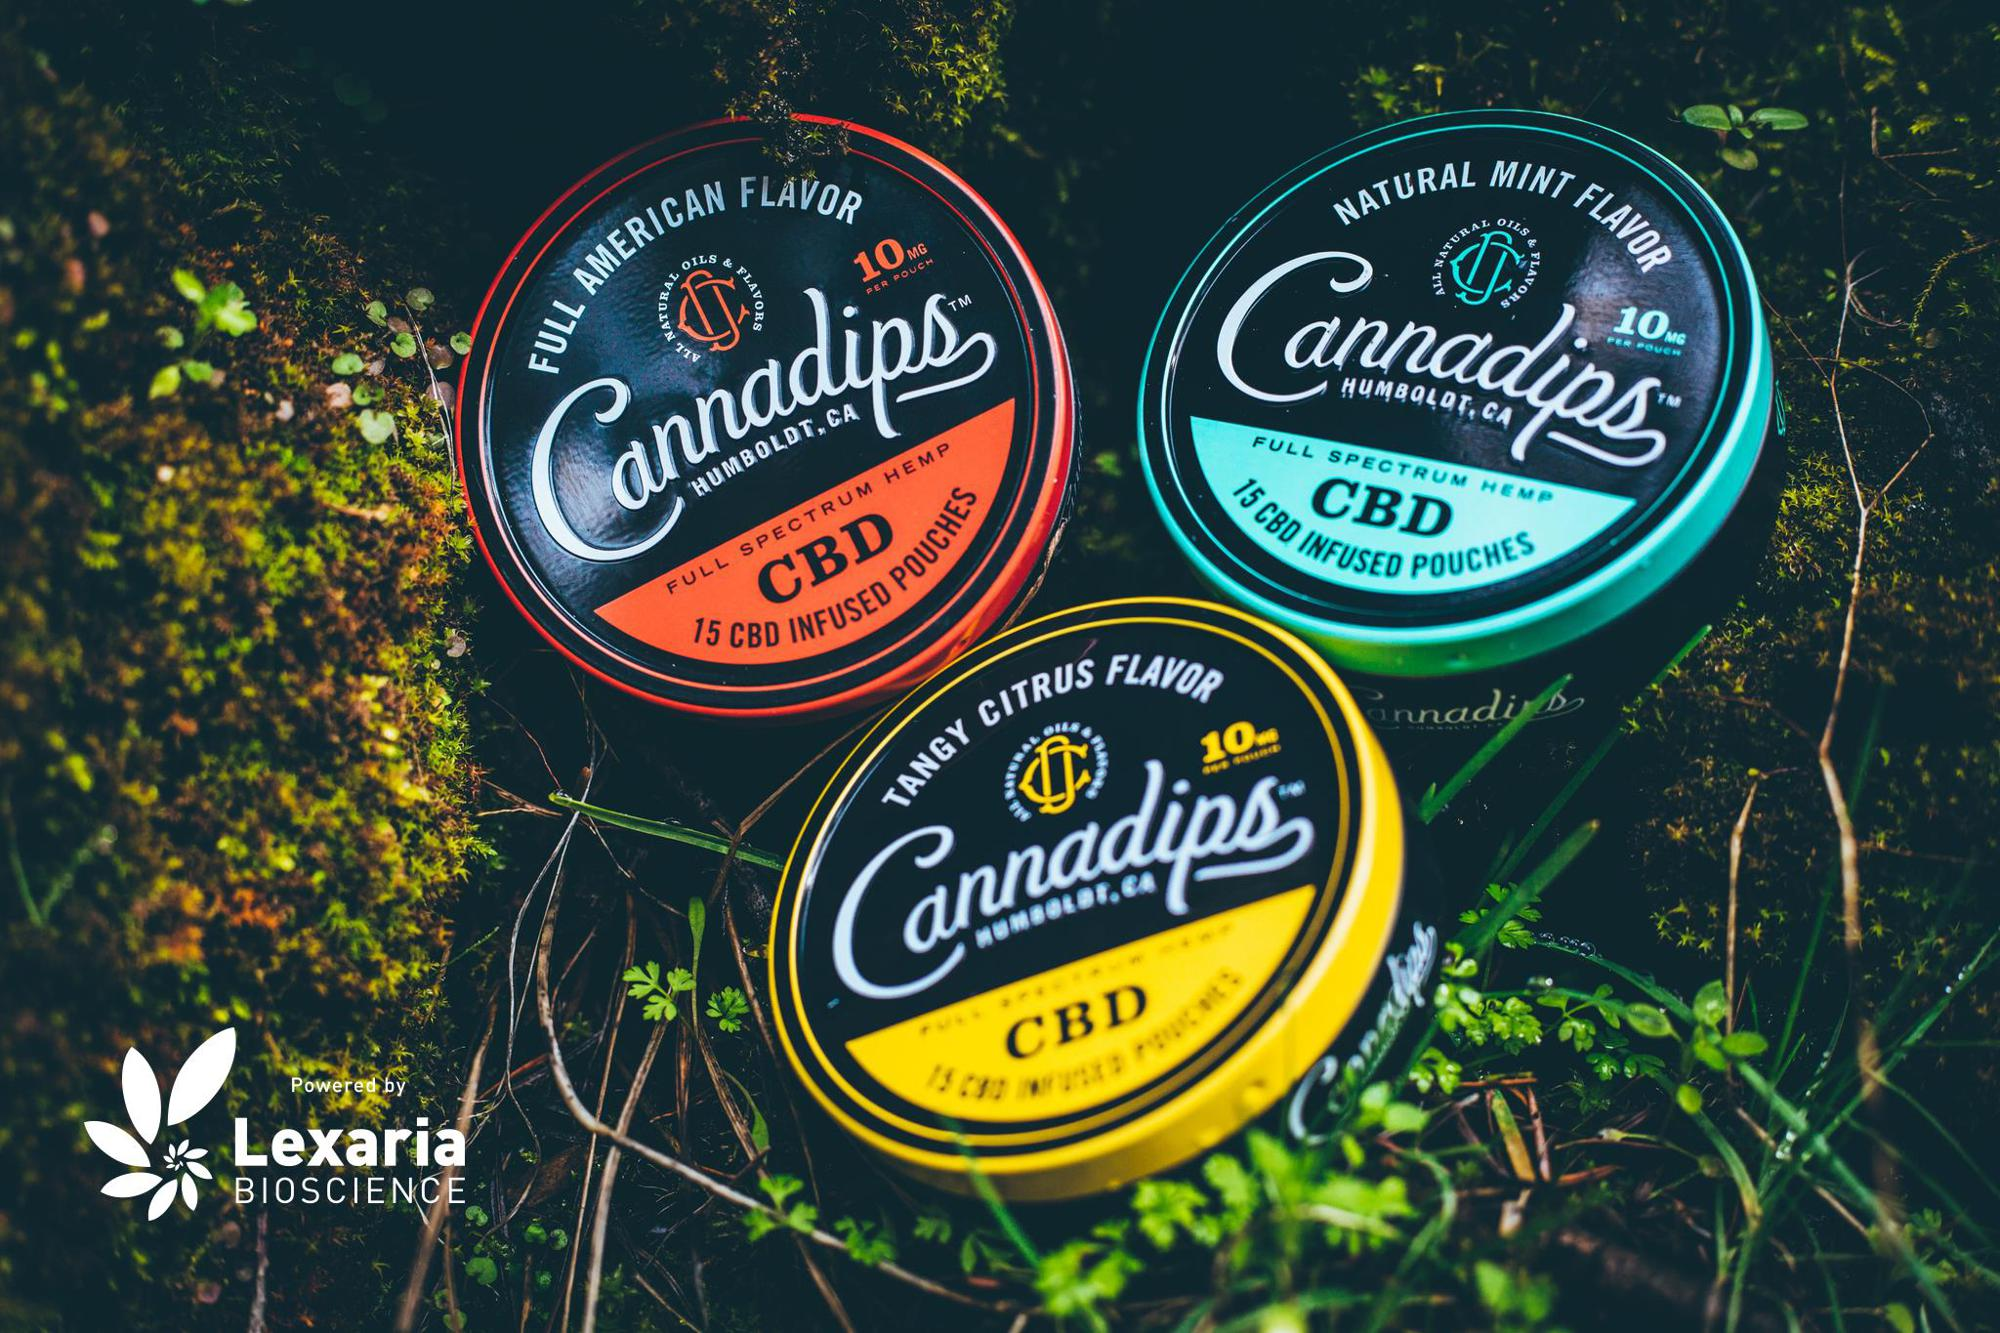 Lexaria Bioscience Corp. and Cannadips CBD Announce Definitive Technology  Licensing agreement for CBD Oral Pouch & Dip Category